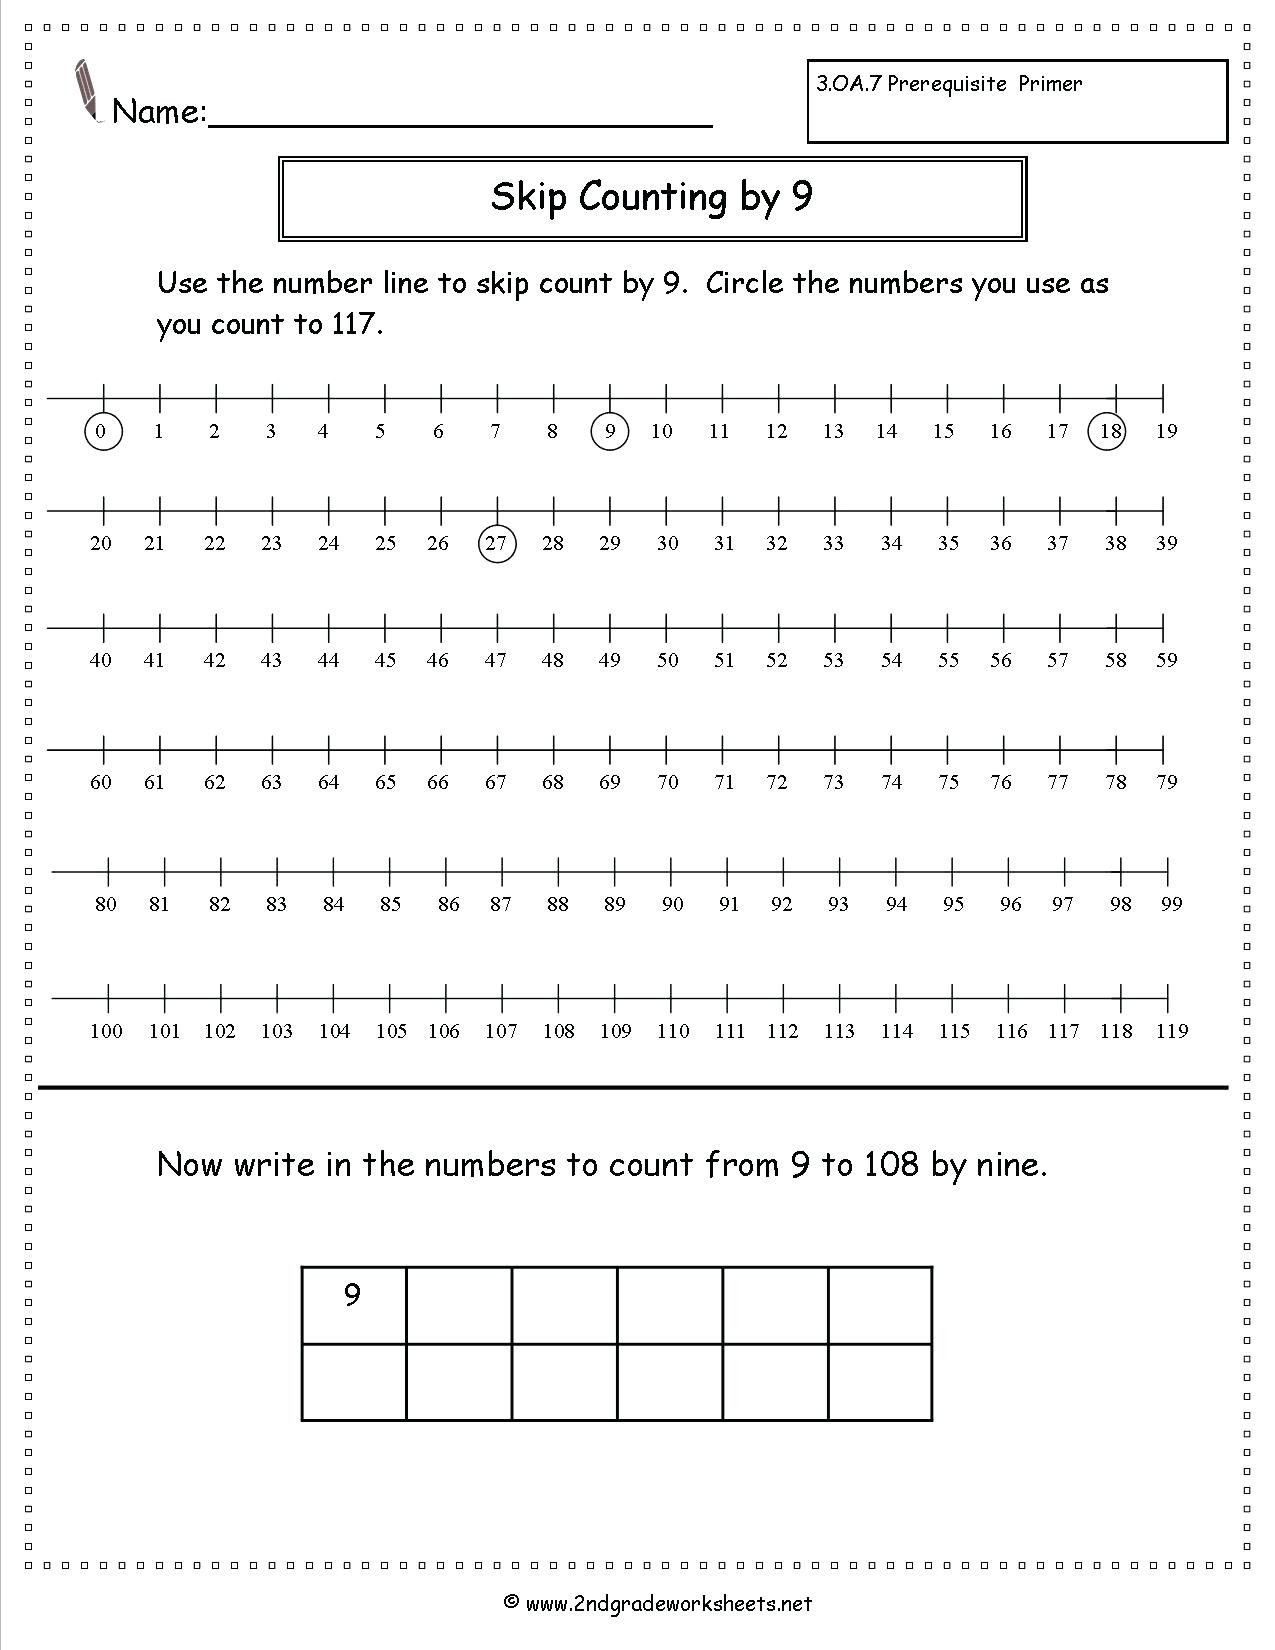 Skip Counting Worksheets First Grade 6th Grade Skip Counting Worksheet